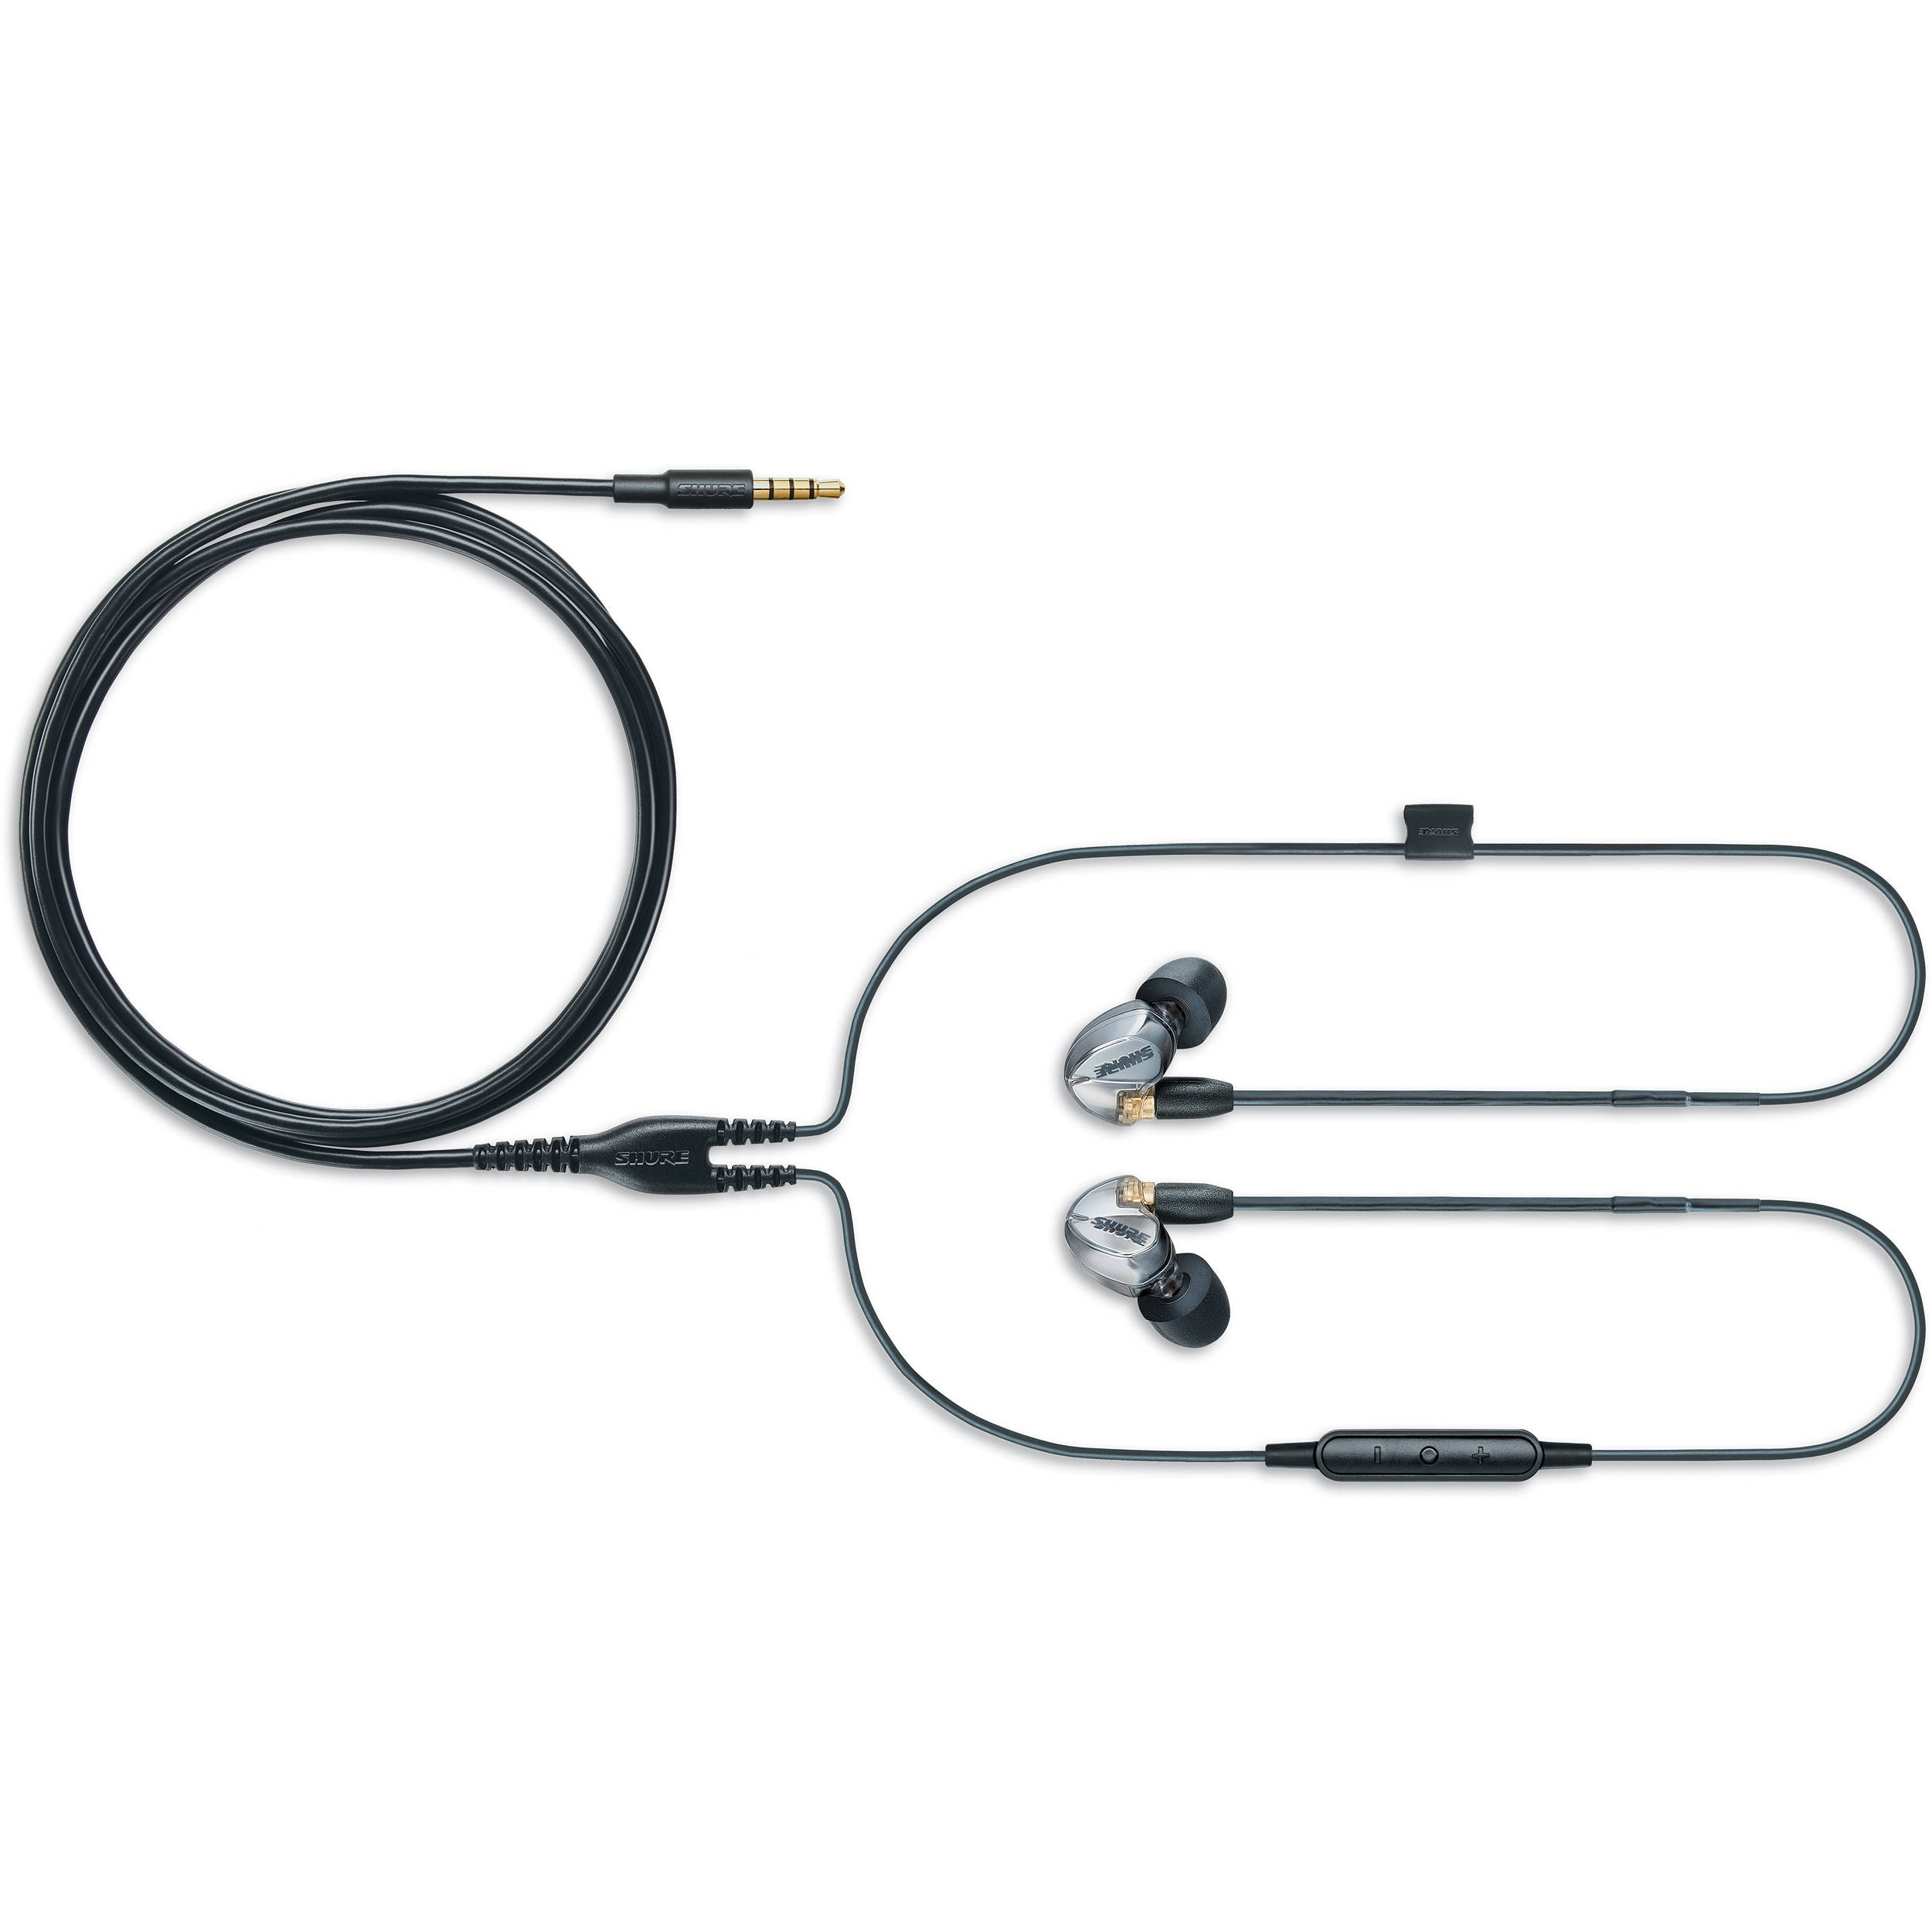 Shure Se425 Sound Isolating Earphones With Bluetooth Se425